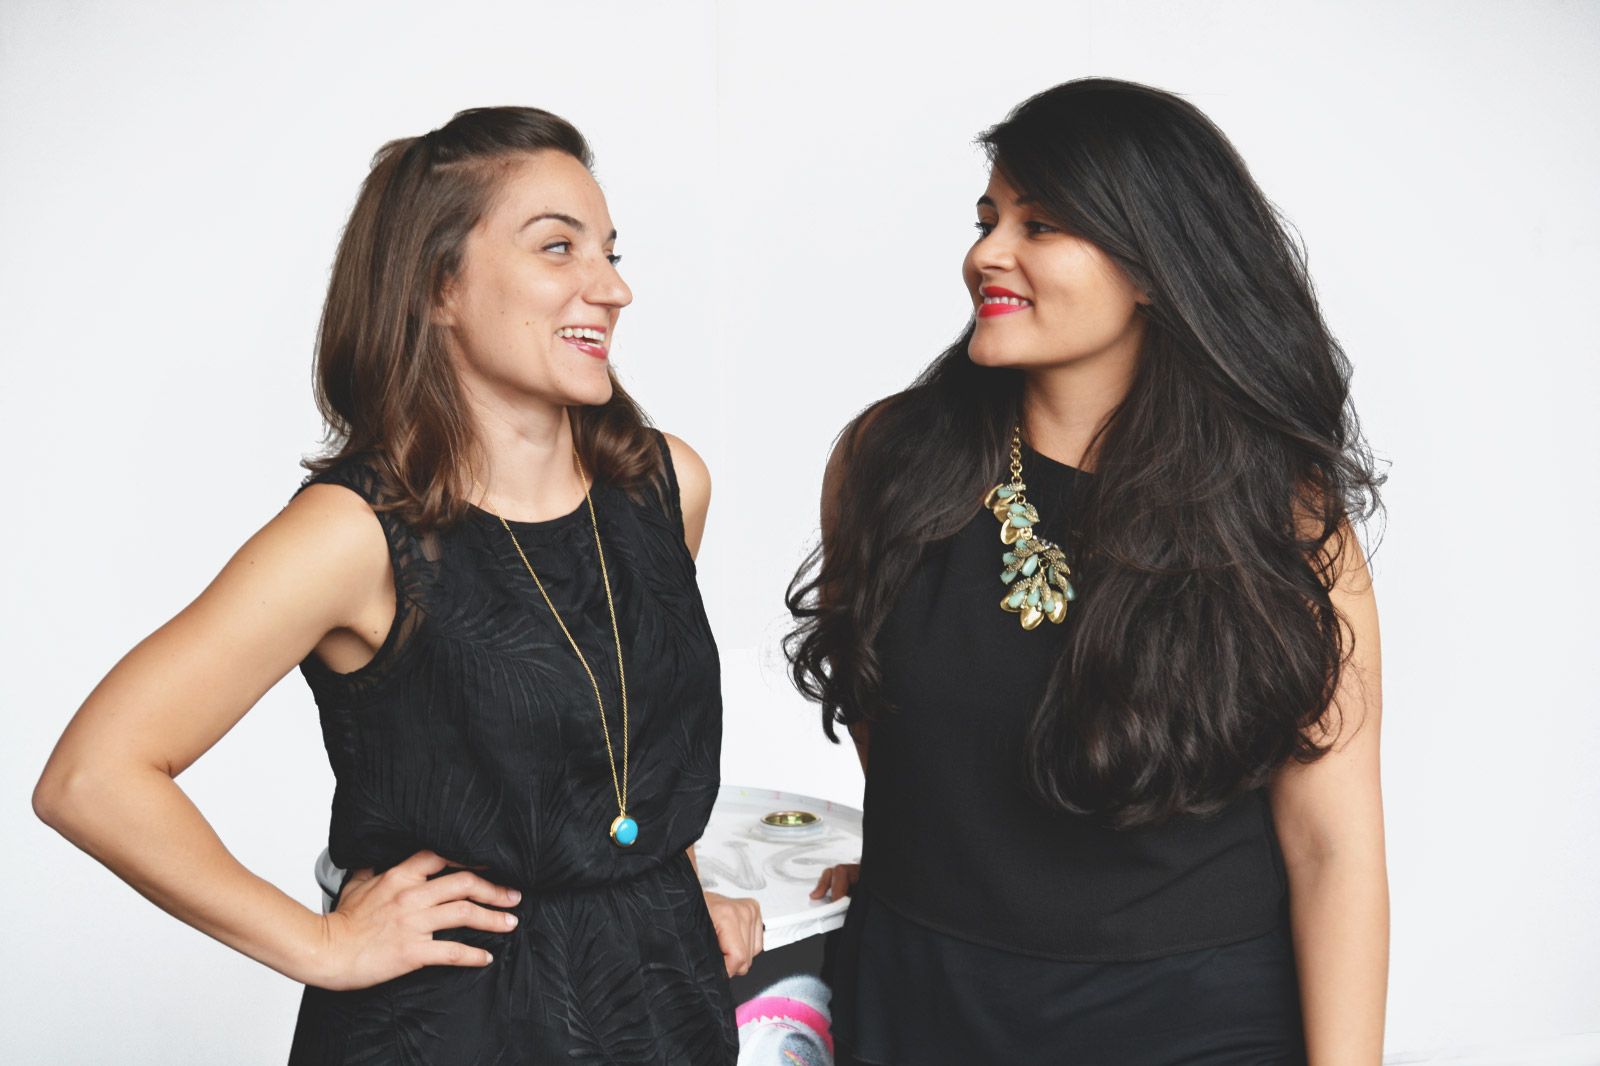 Dia&Co co-founders Lydia Gilbert, left, and Nadia Boujarwah. The company raised $40 million for plus-size fashion.